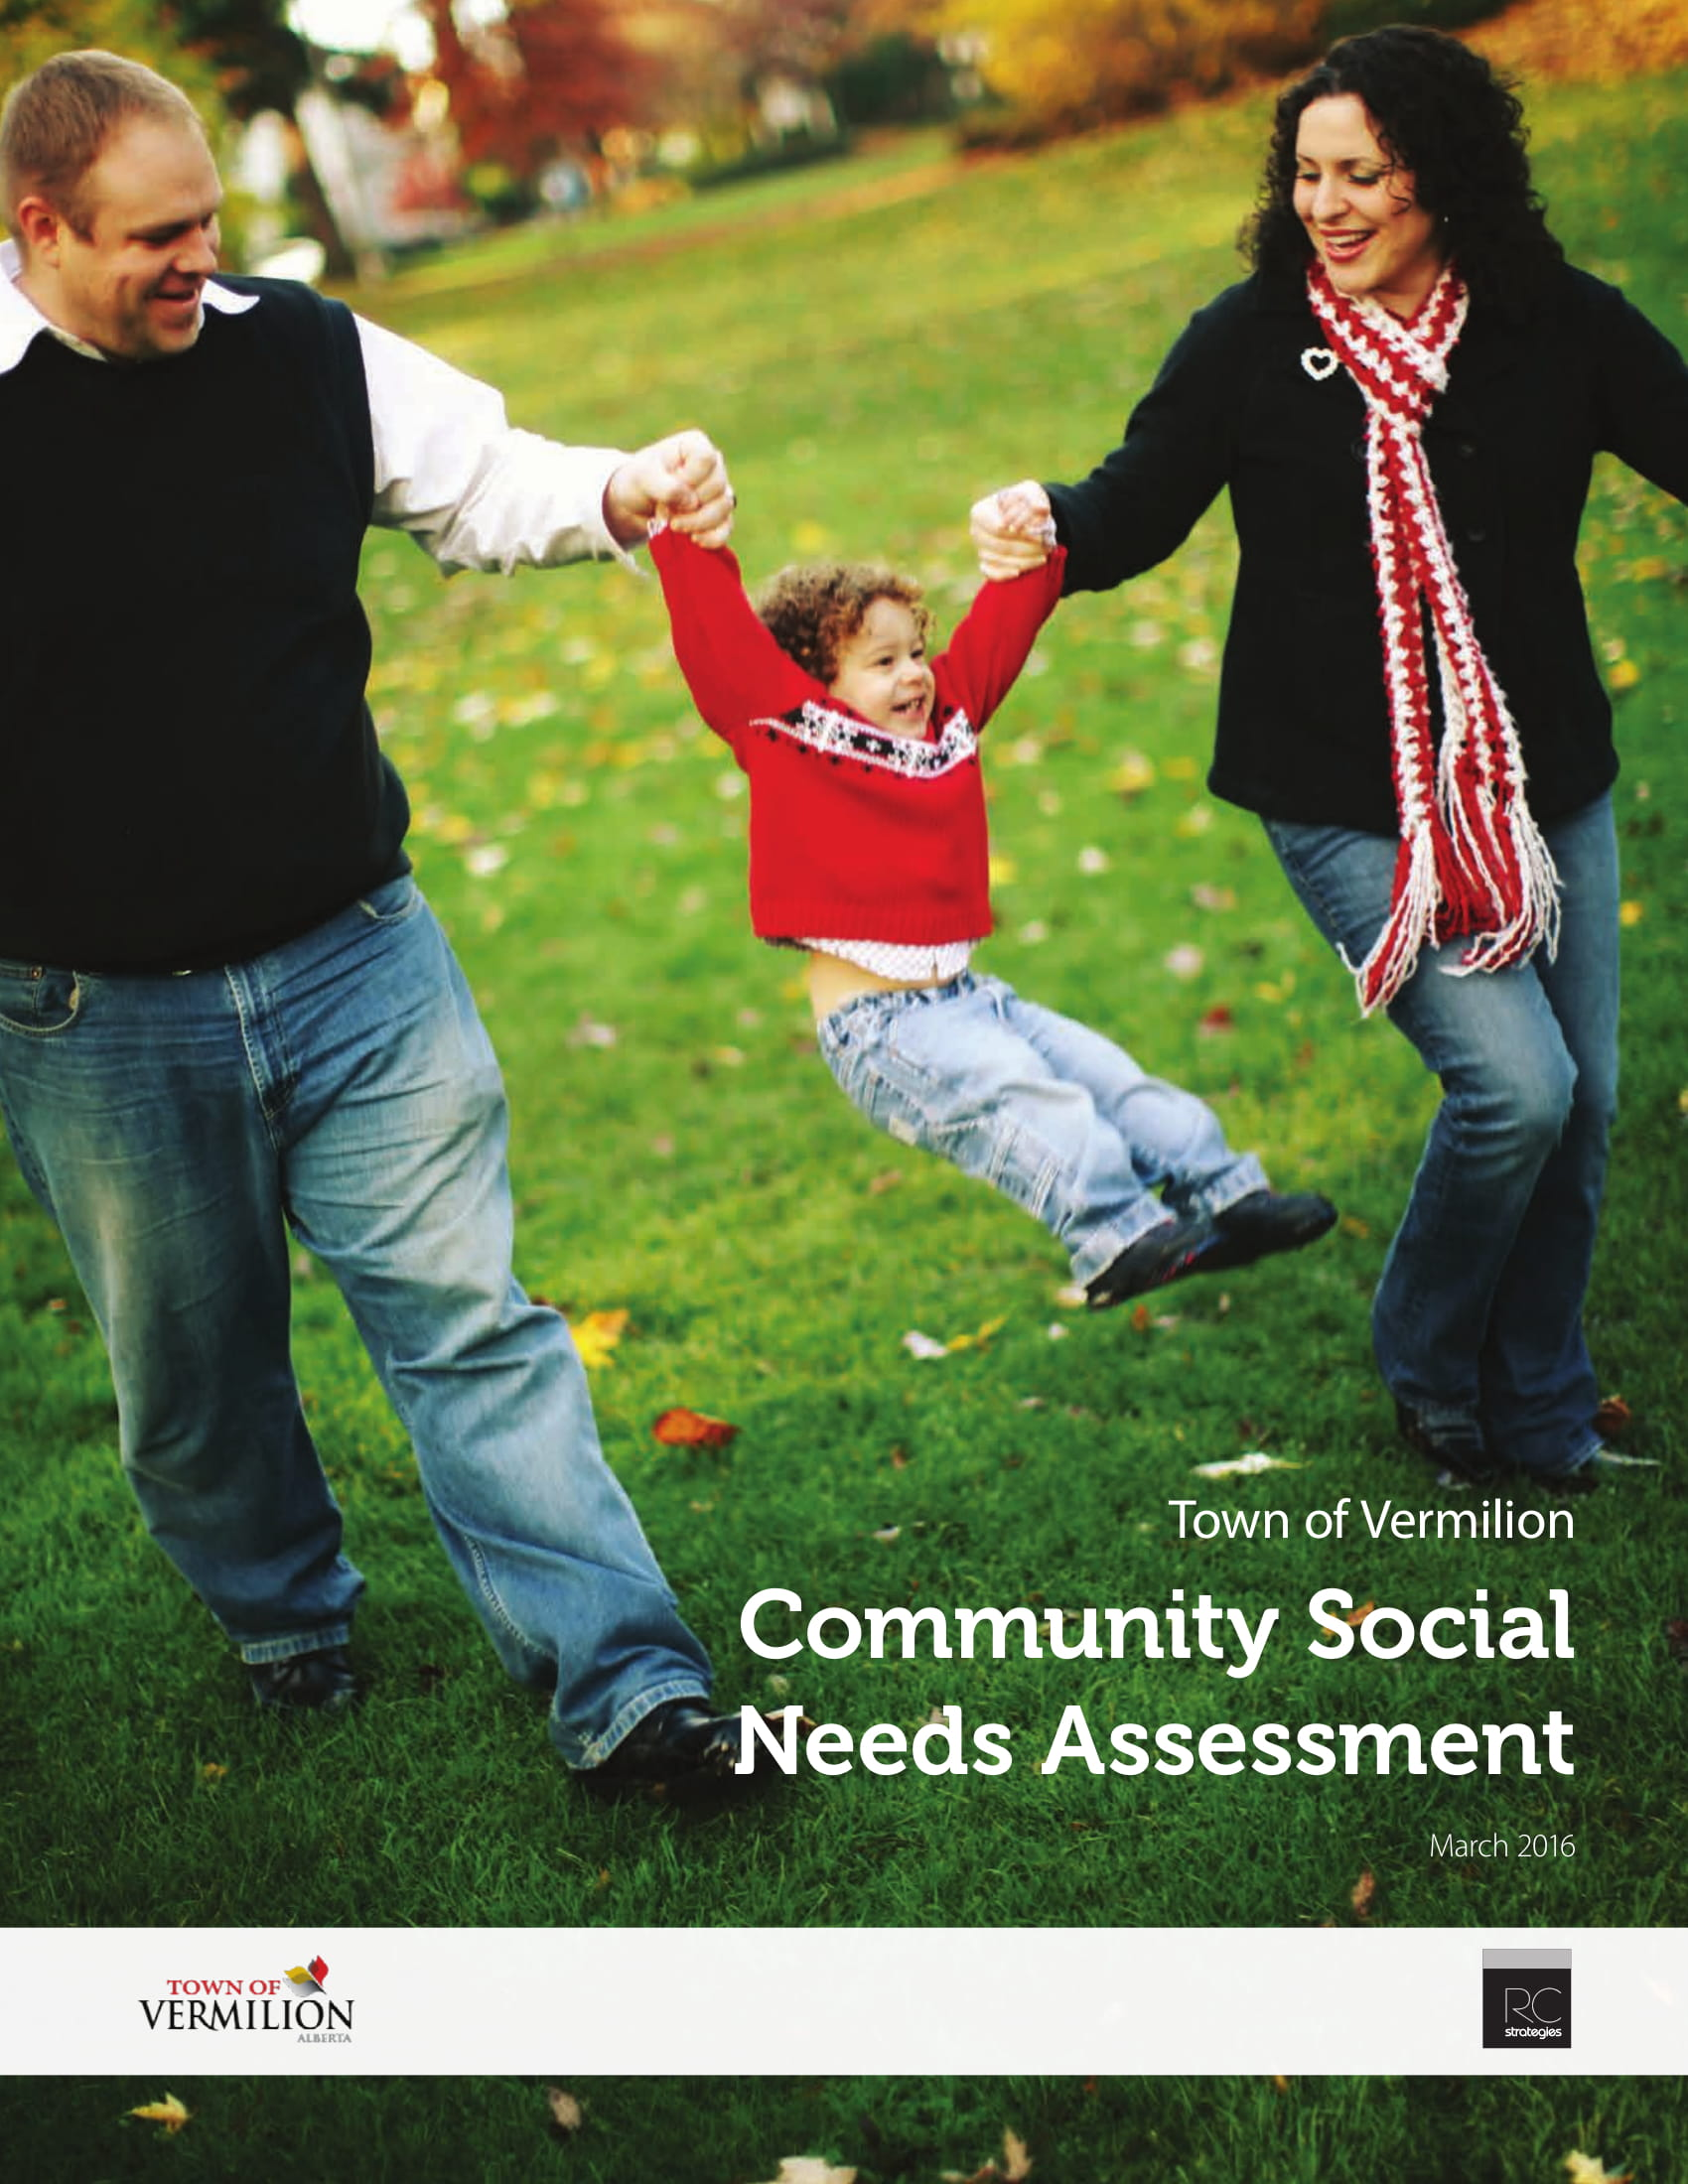 Community Social Needs Assessment Example